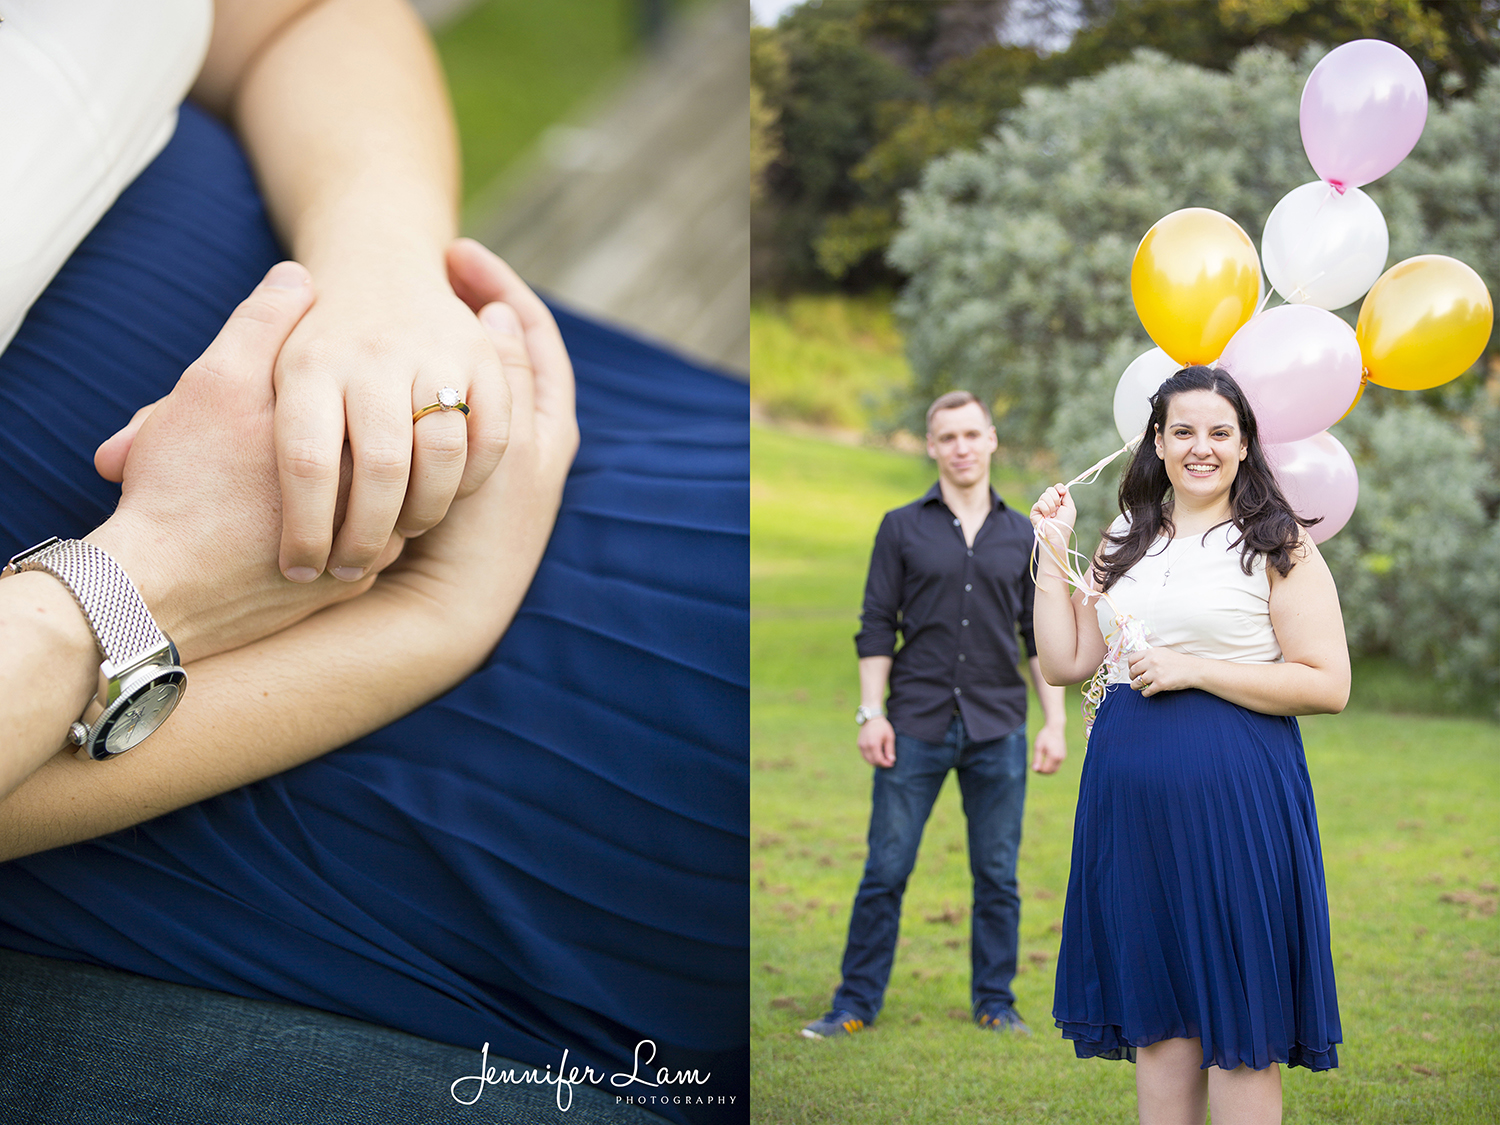 Engagement Session - Sydney Wedding Photographer - Jennifer Lam Photography (1).jpg